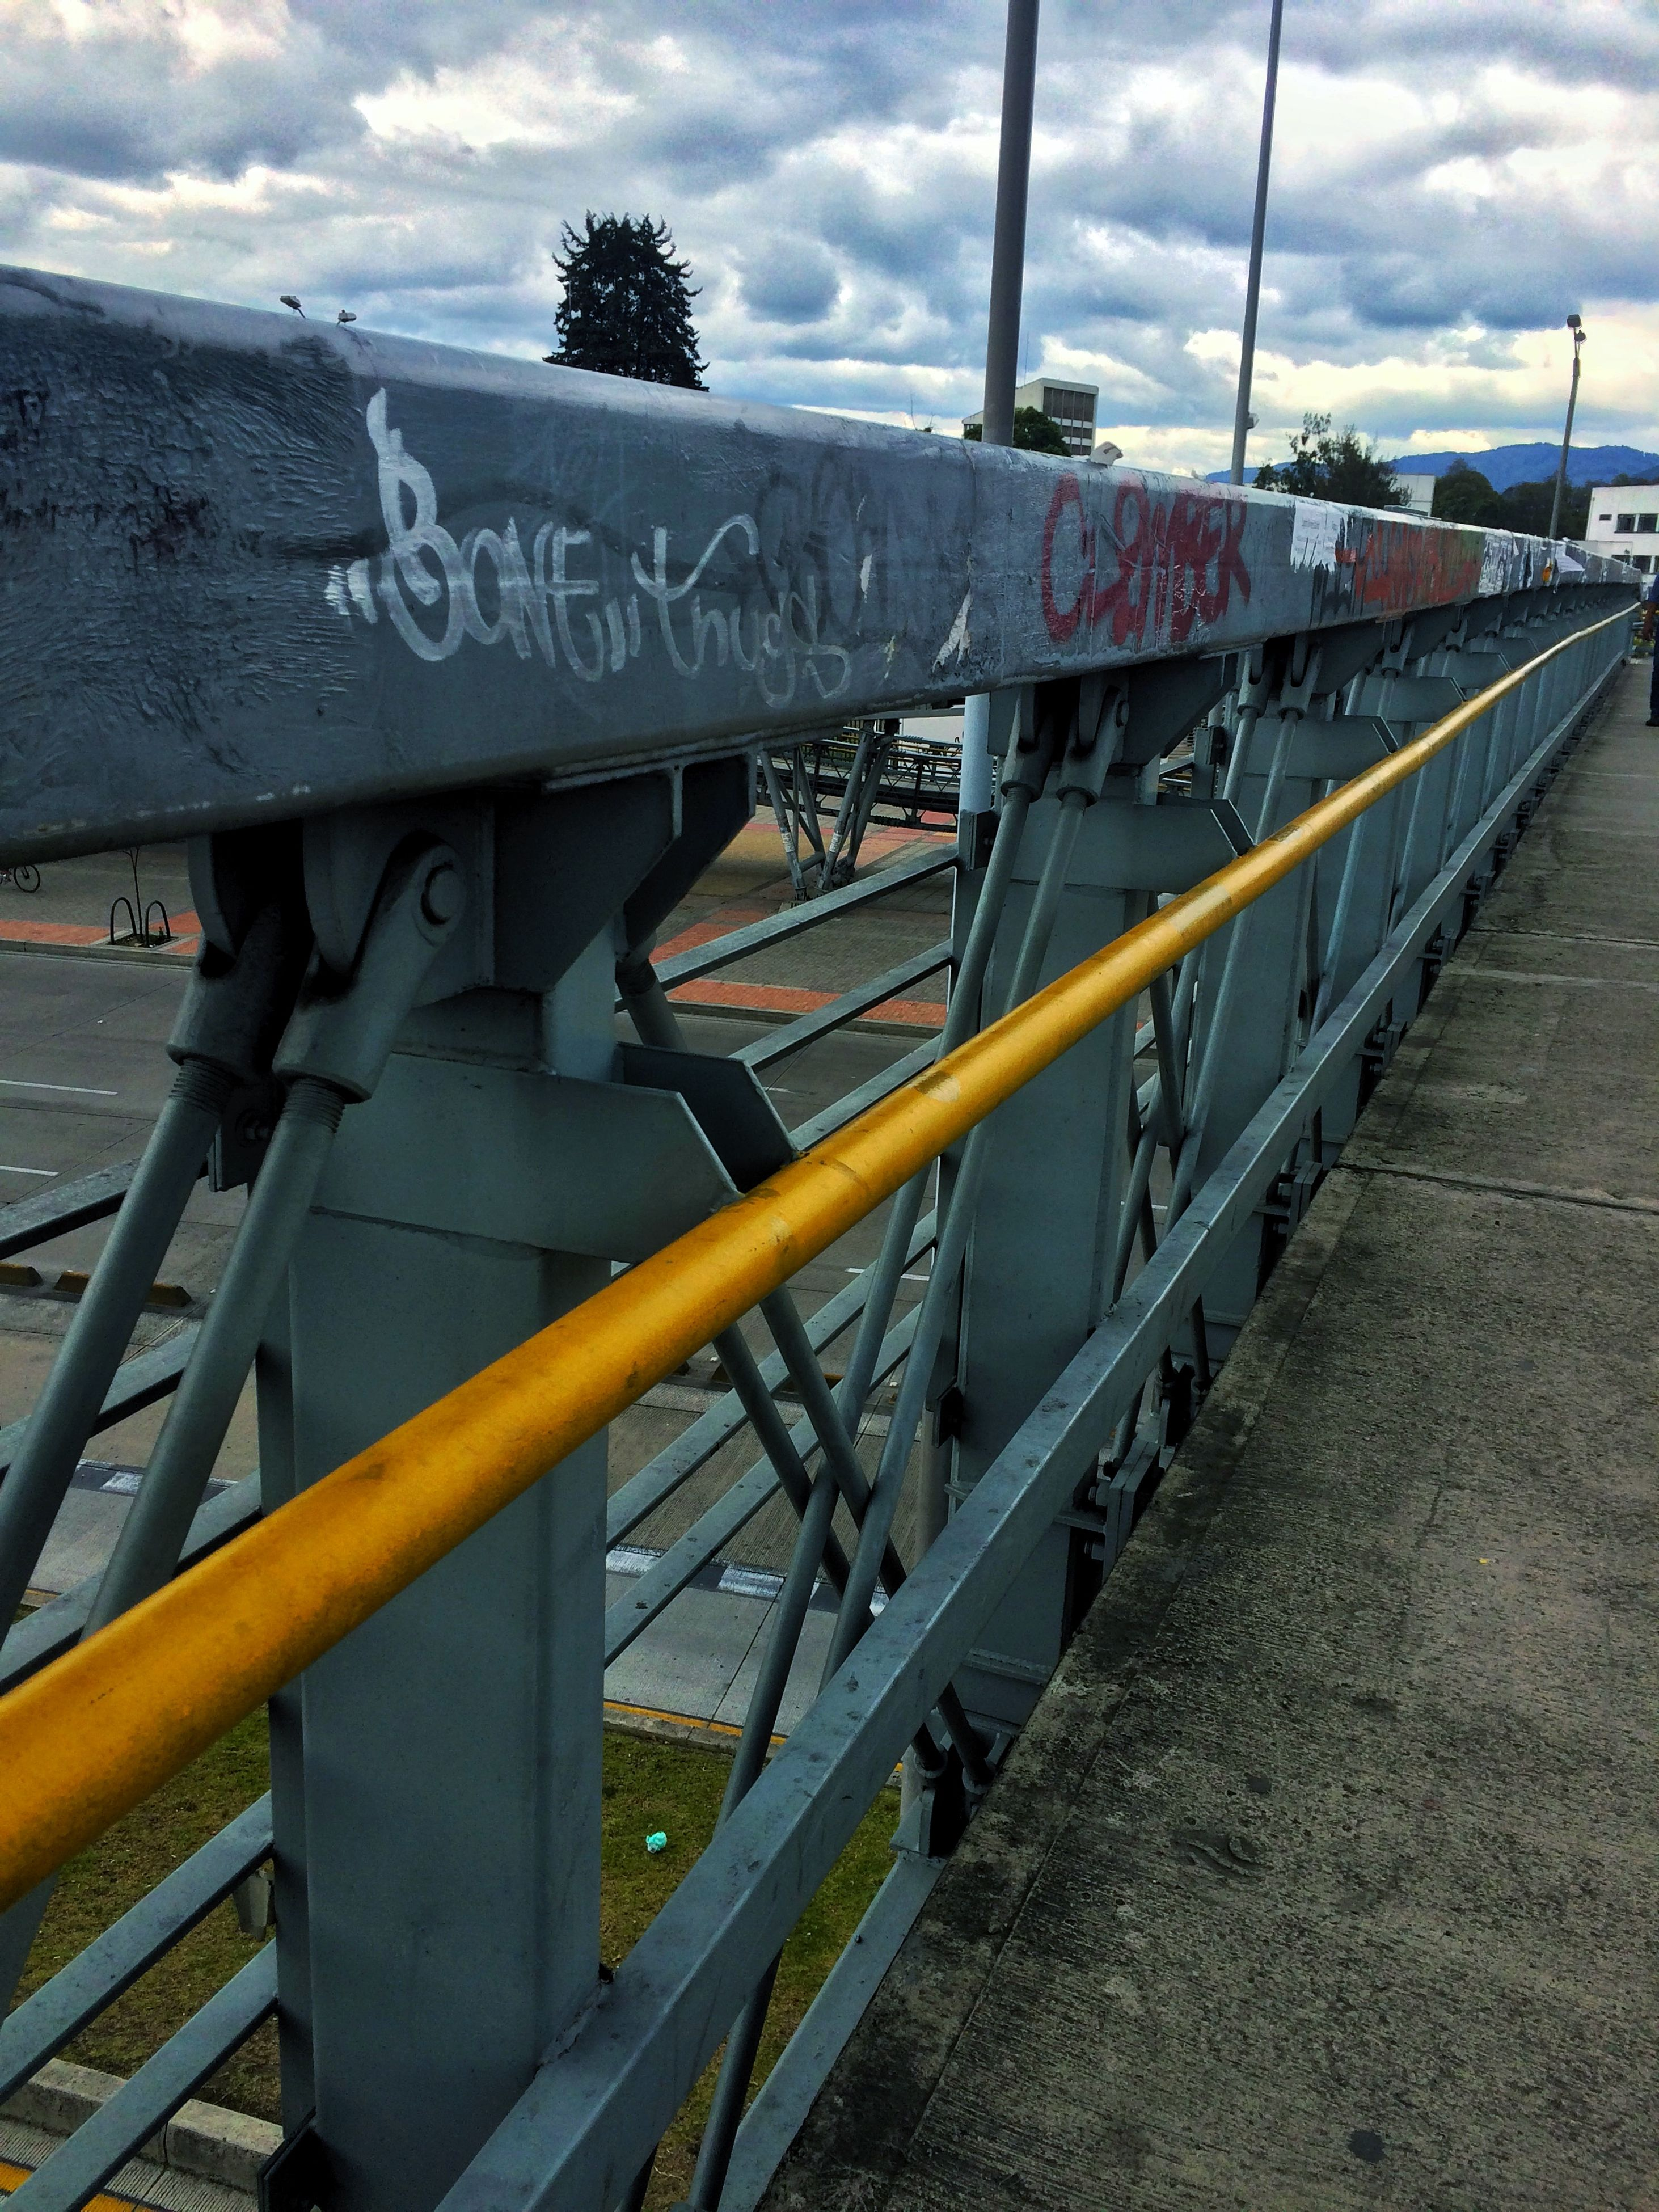 railing, transportation, metal, text, sky, bridge - man made structure, metallic, built structure, day, connection, no people, outdoors, western script, red, cloud - sky, sunlight, railroad track, communication, the way forward, architecture